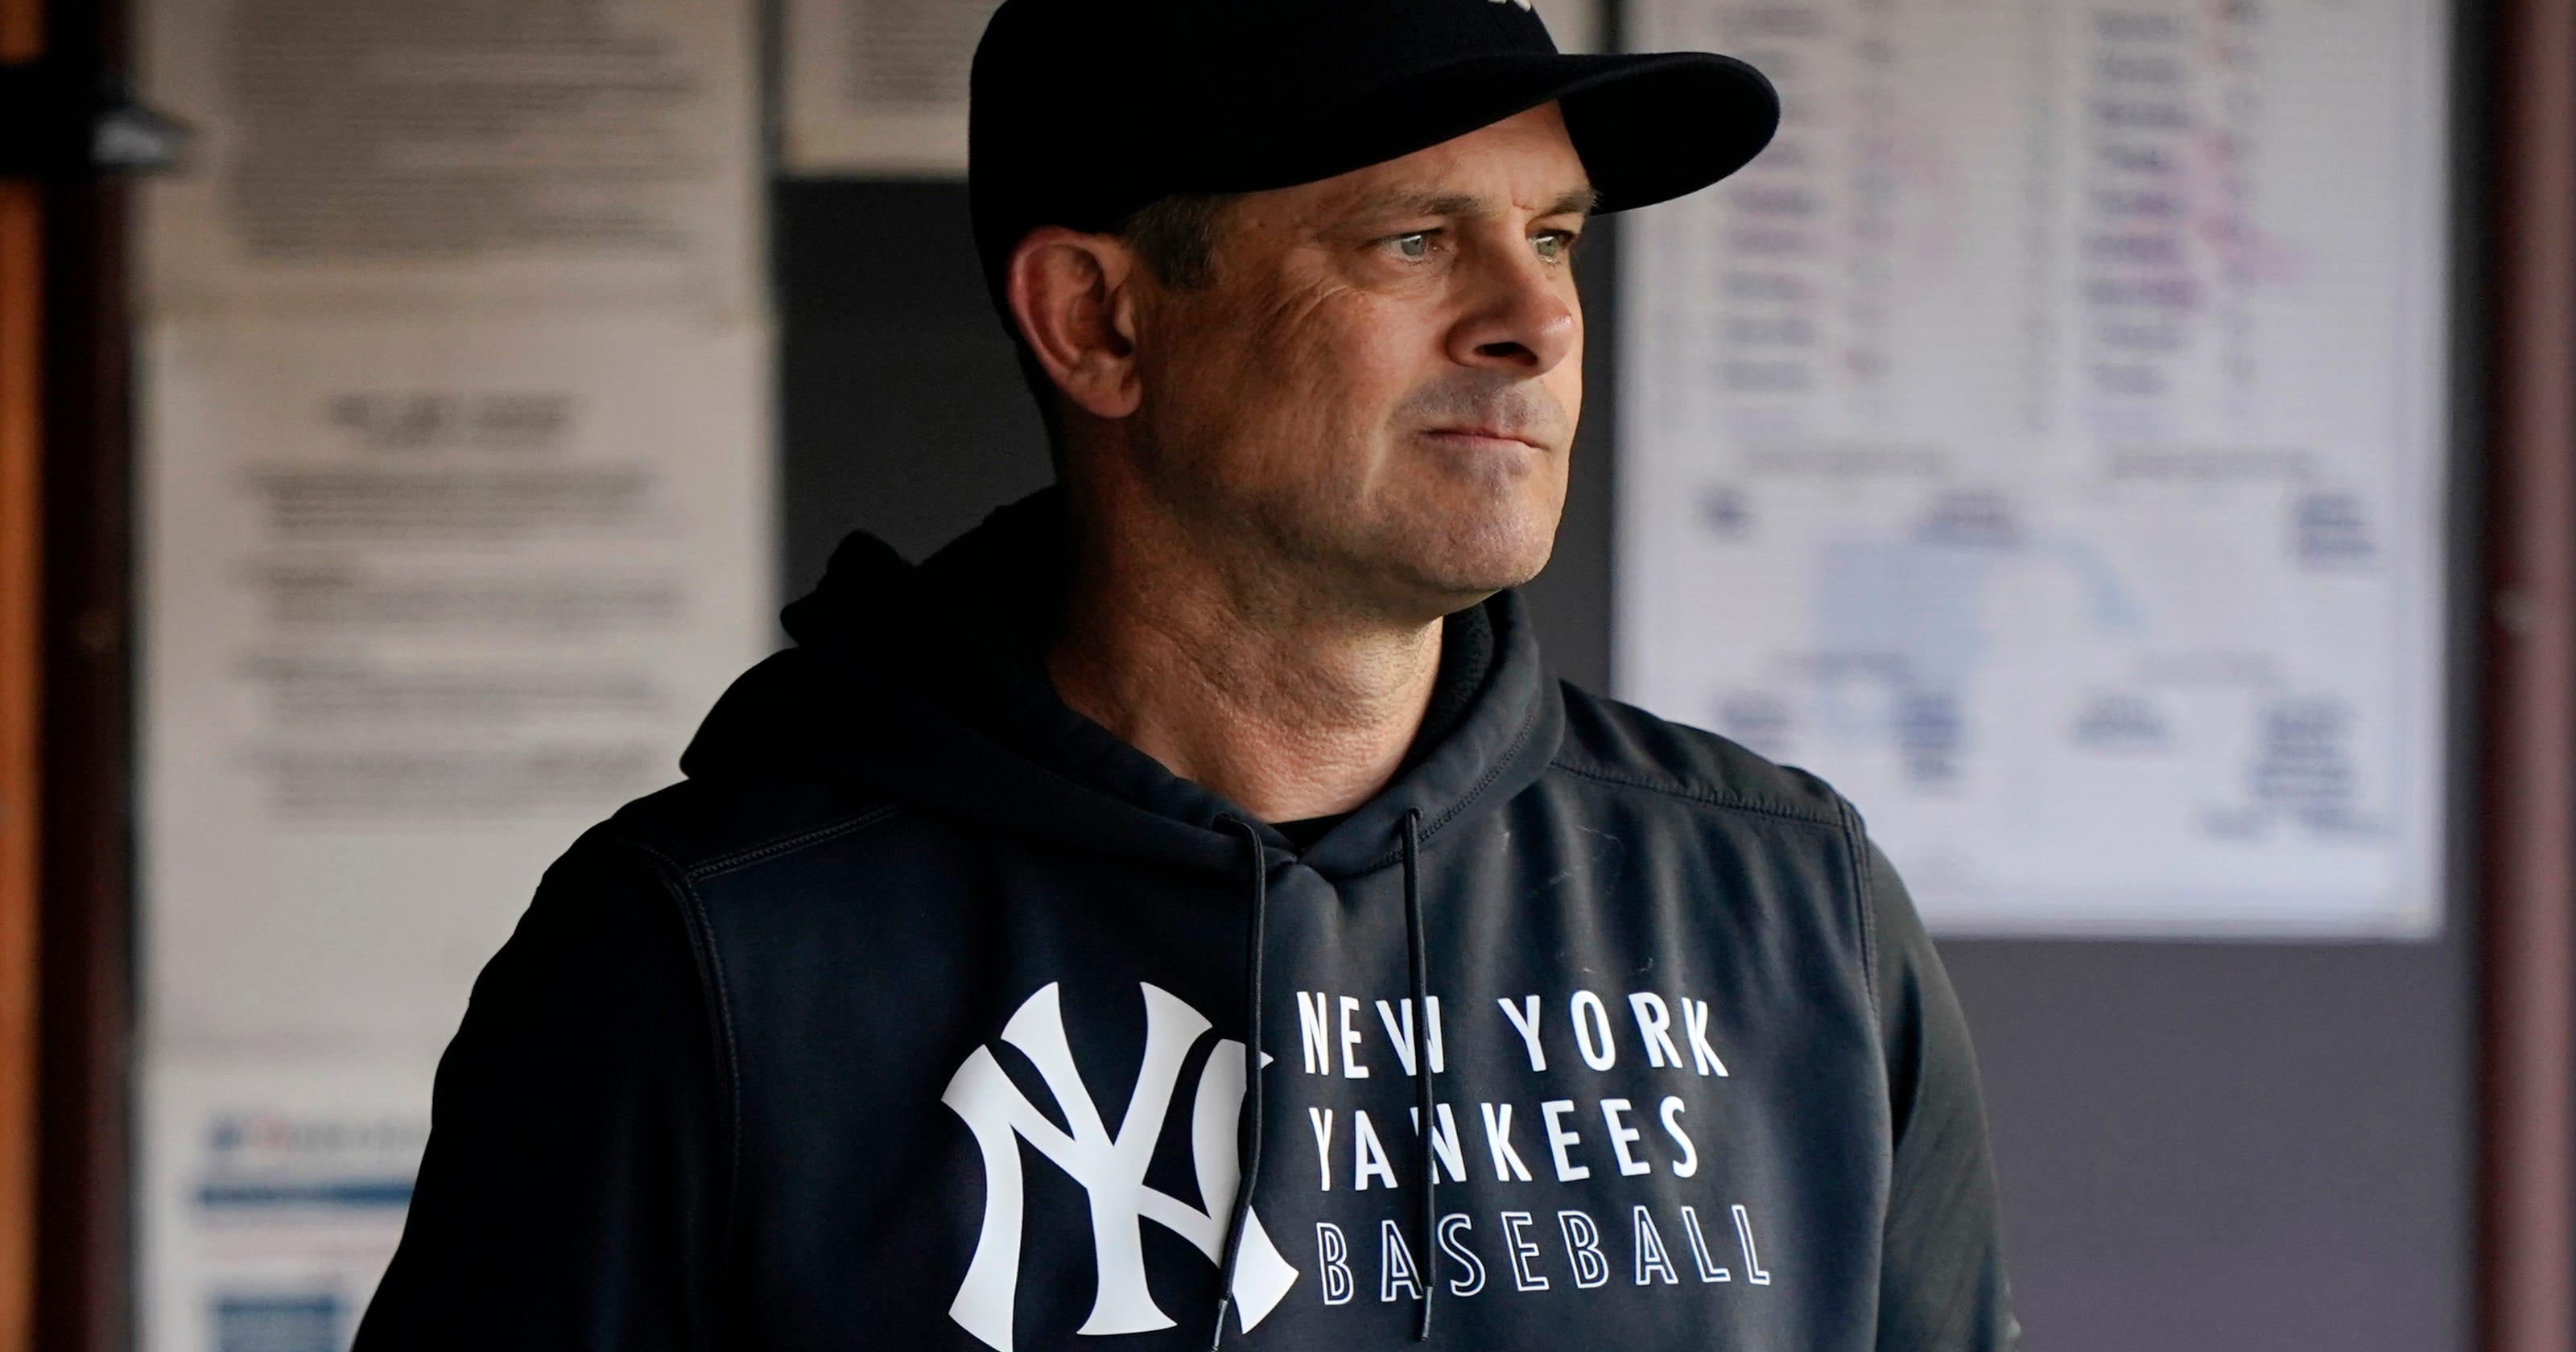 Will the Yankees keep Aaron Boone? In the last year of his contract, manager on the hot seat